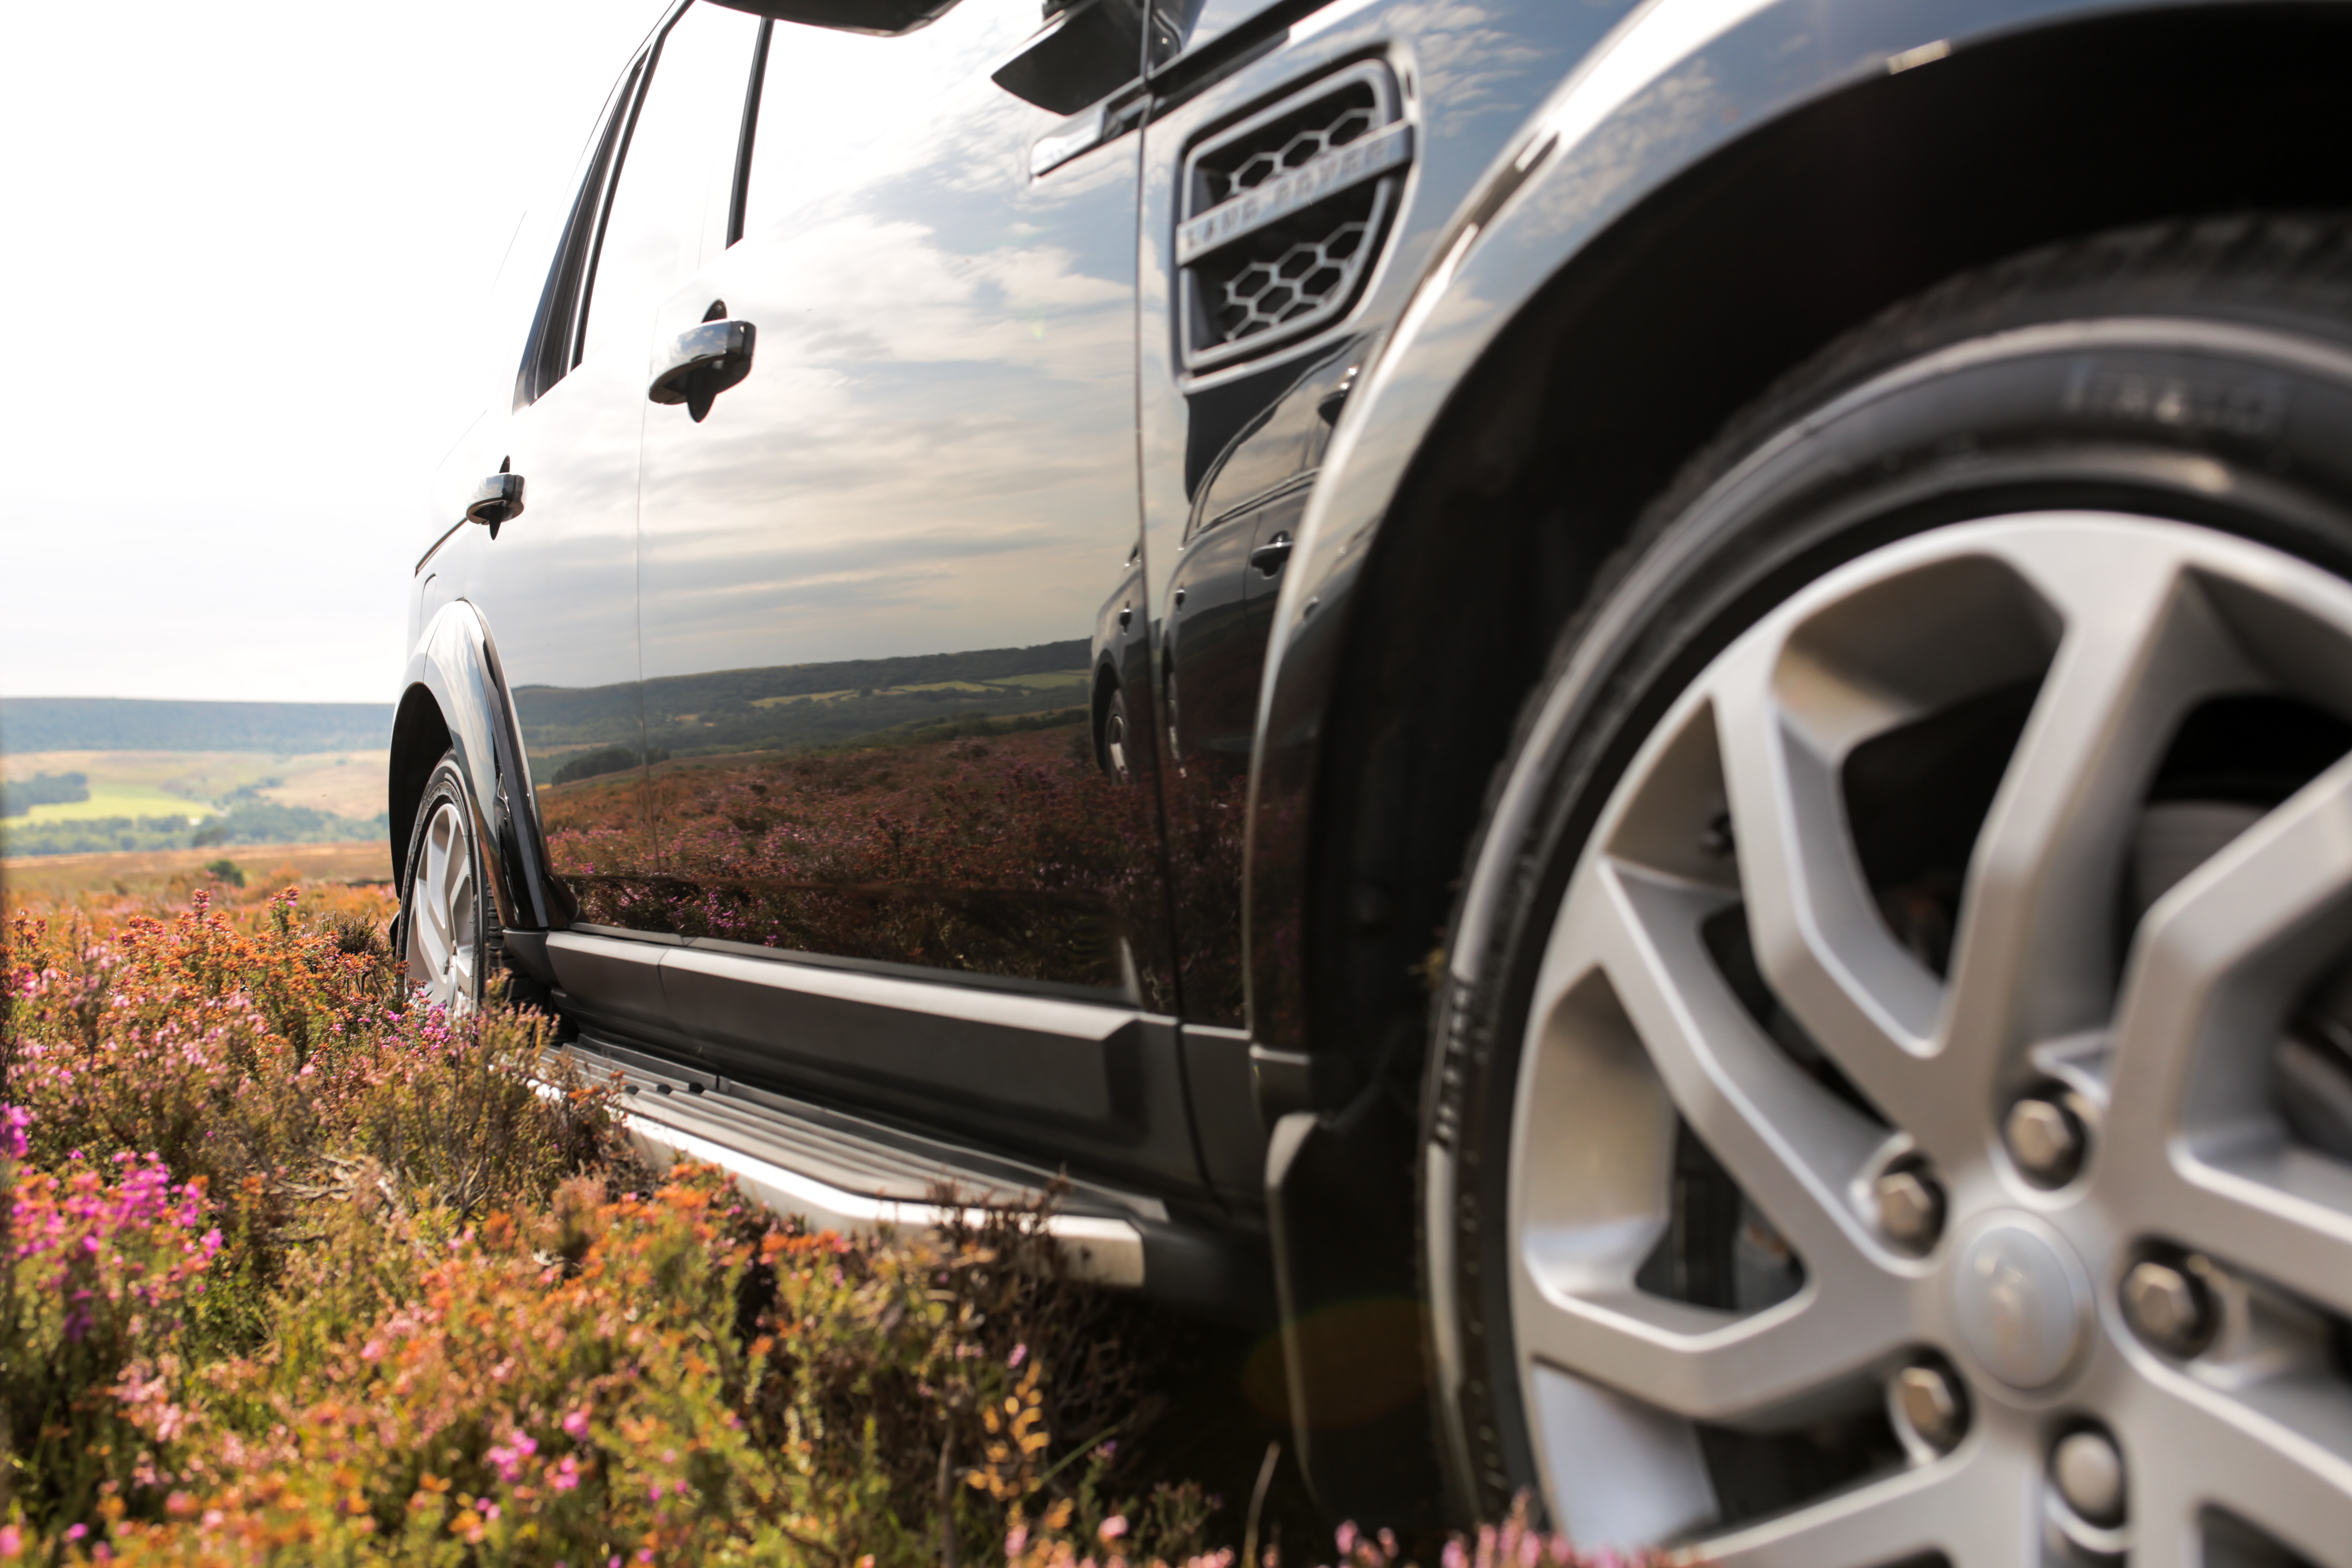 Landrover Discovery Landmark on the grouse moors at Bransdale.